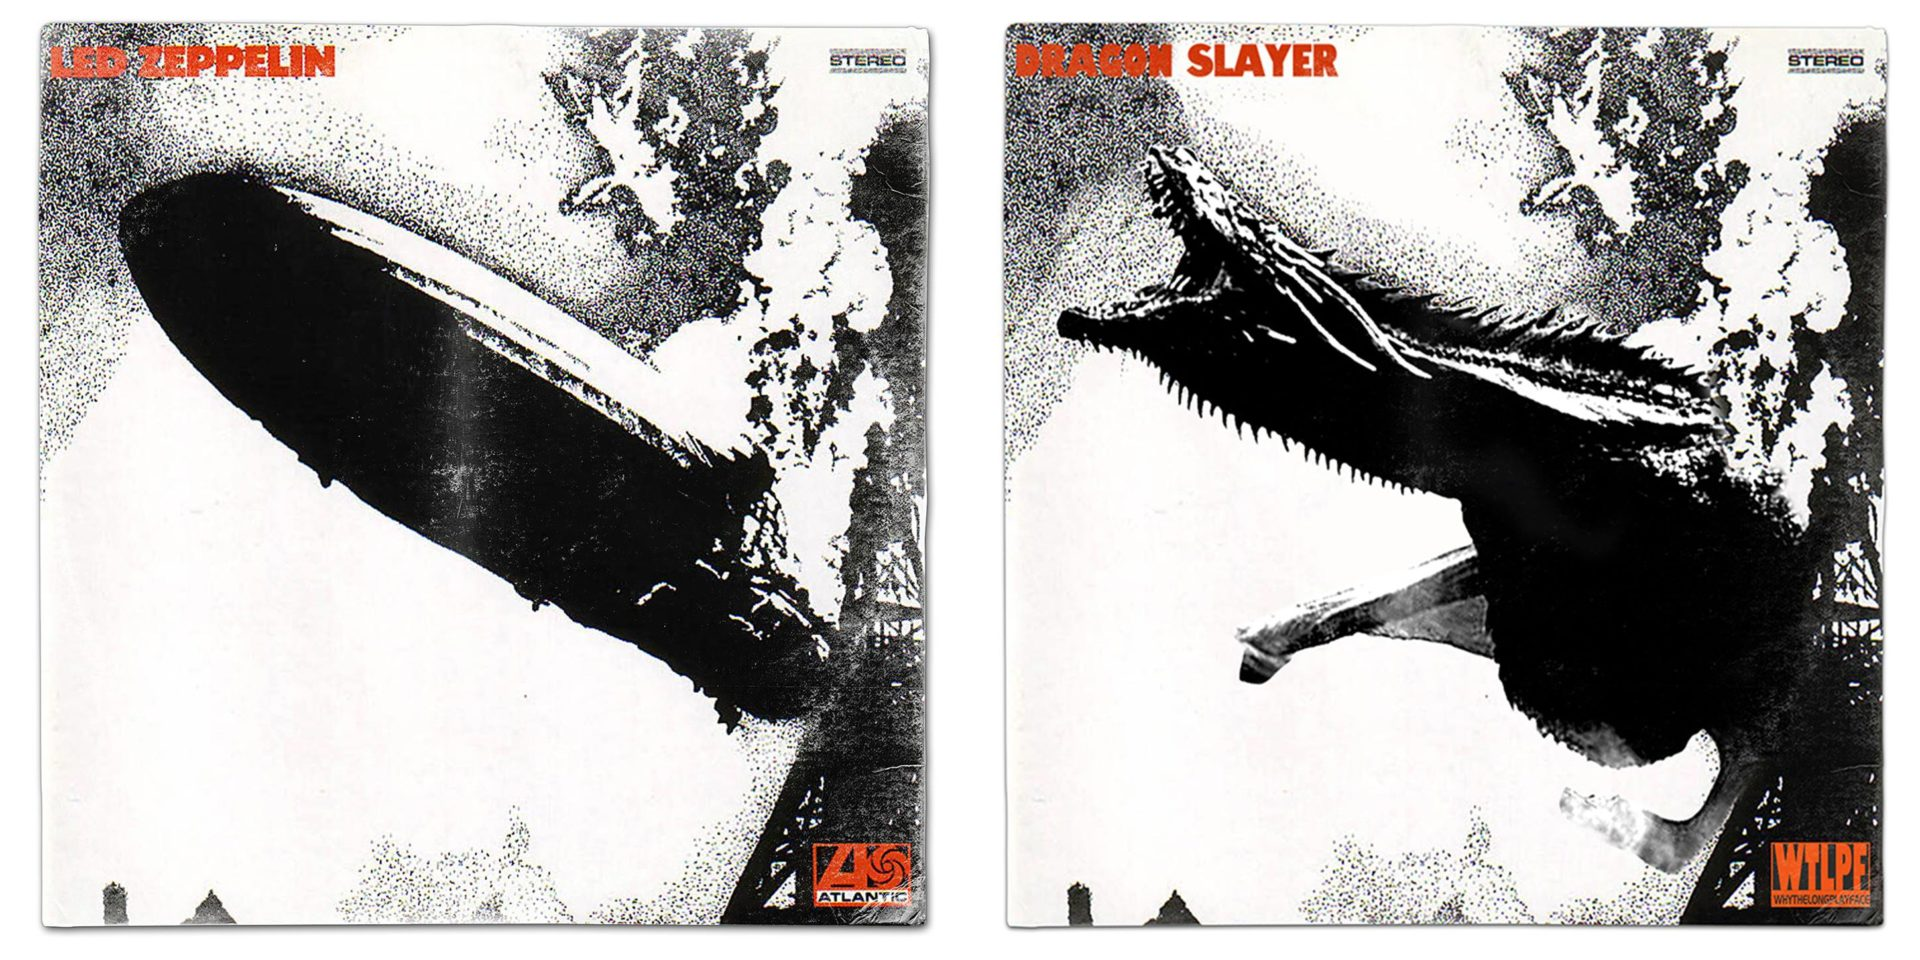 Led Zeppelin - Dragon Slayer